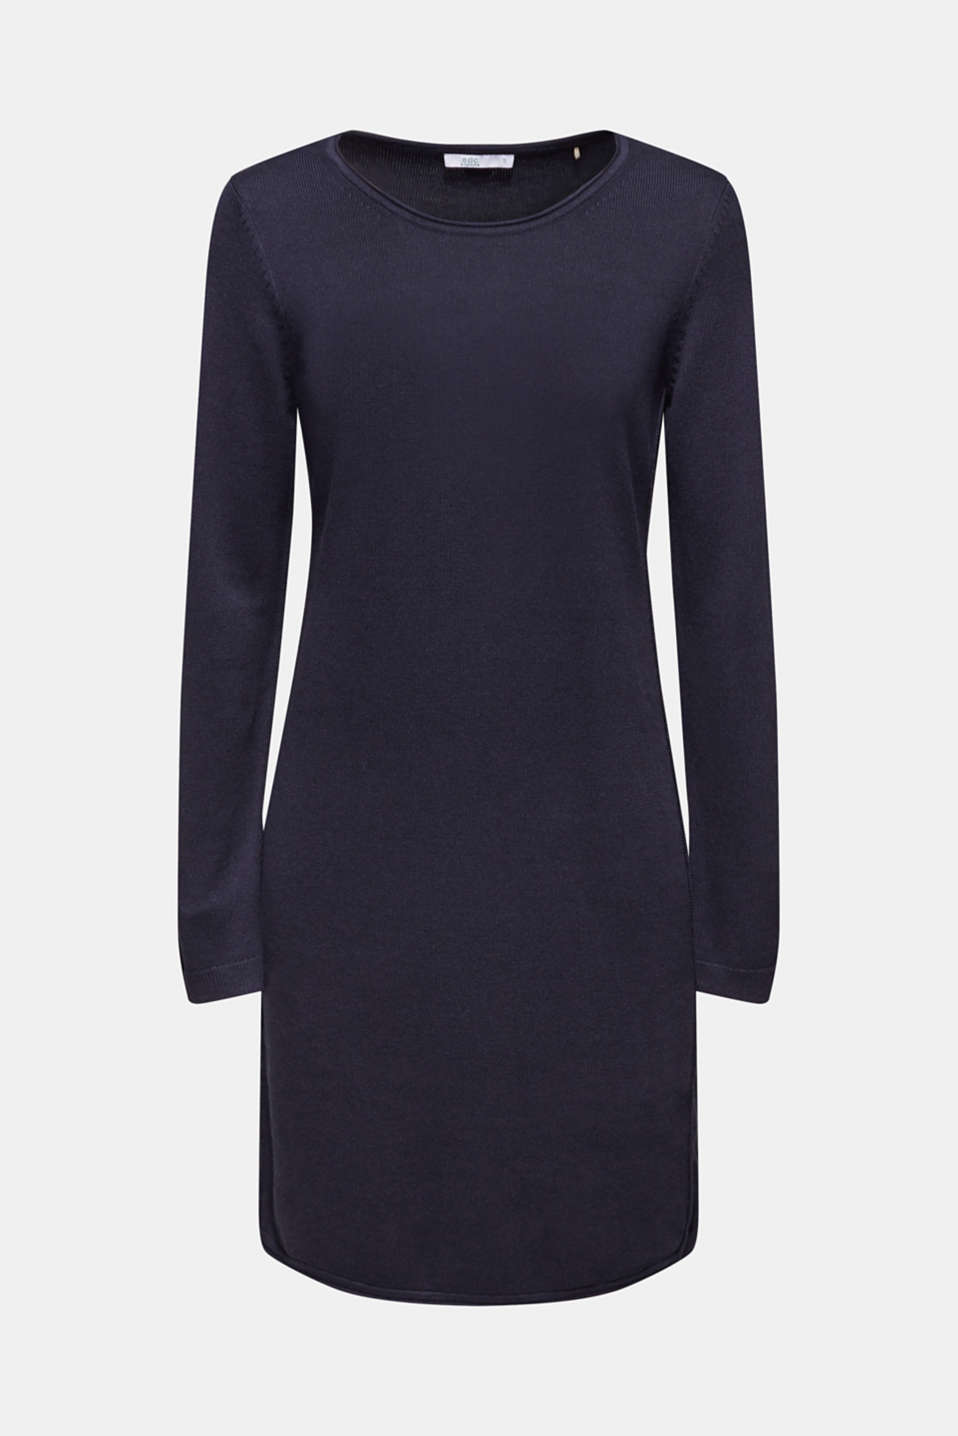 Knitted dress in a basic look, NAVY, detail image number 8